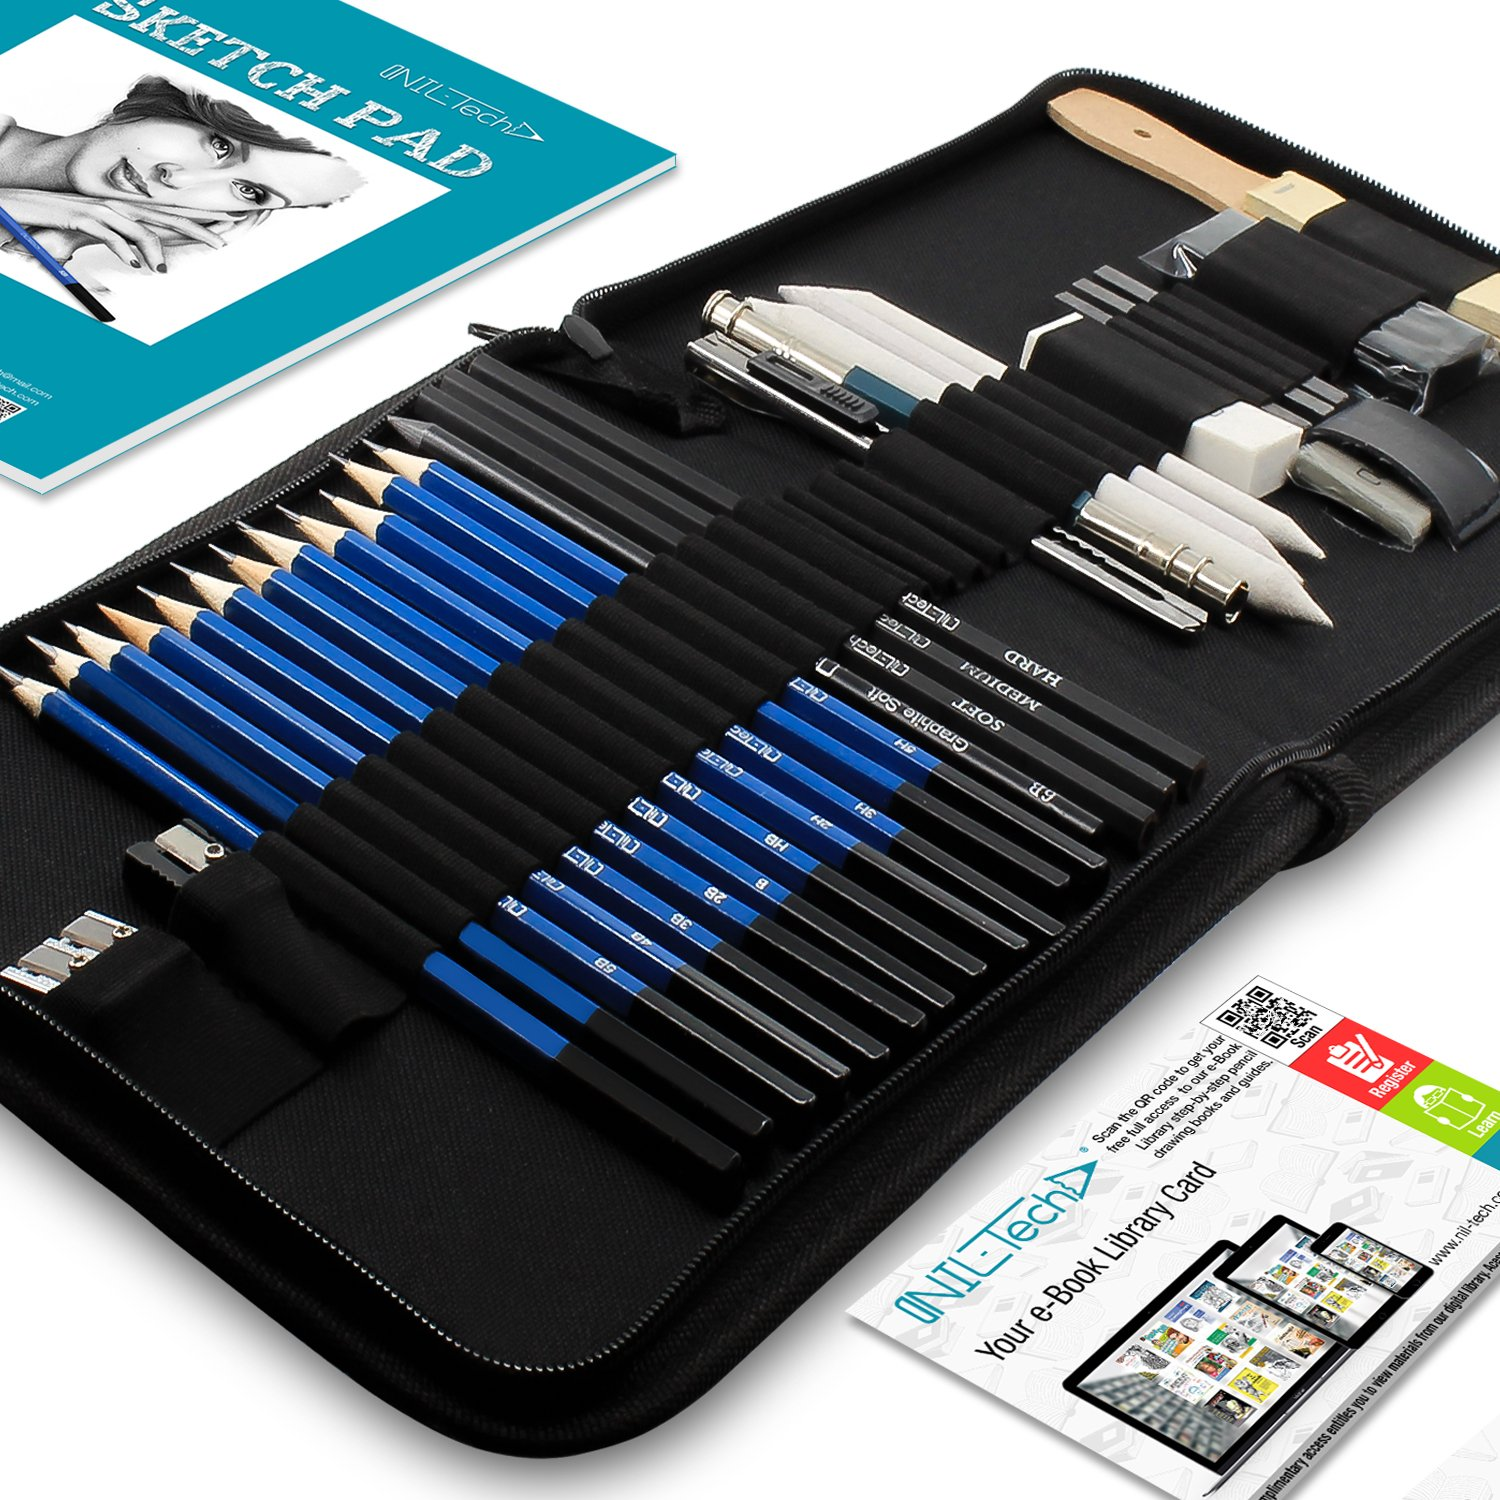 Drawing Pencils Art Supplies – 35 Sketching Tools Set – Each Art Kit Includes BONUS Drawing Pad and Digital Library Drawing Tutorials Cool Stuff - Pencil Pouch, Graphite Charcoal Pencils, Erasers